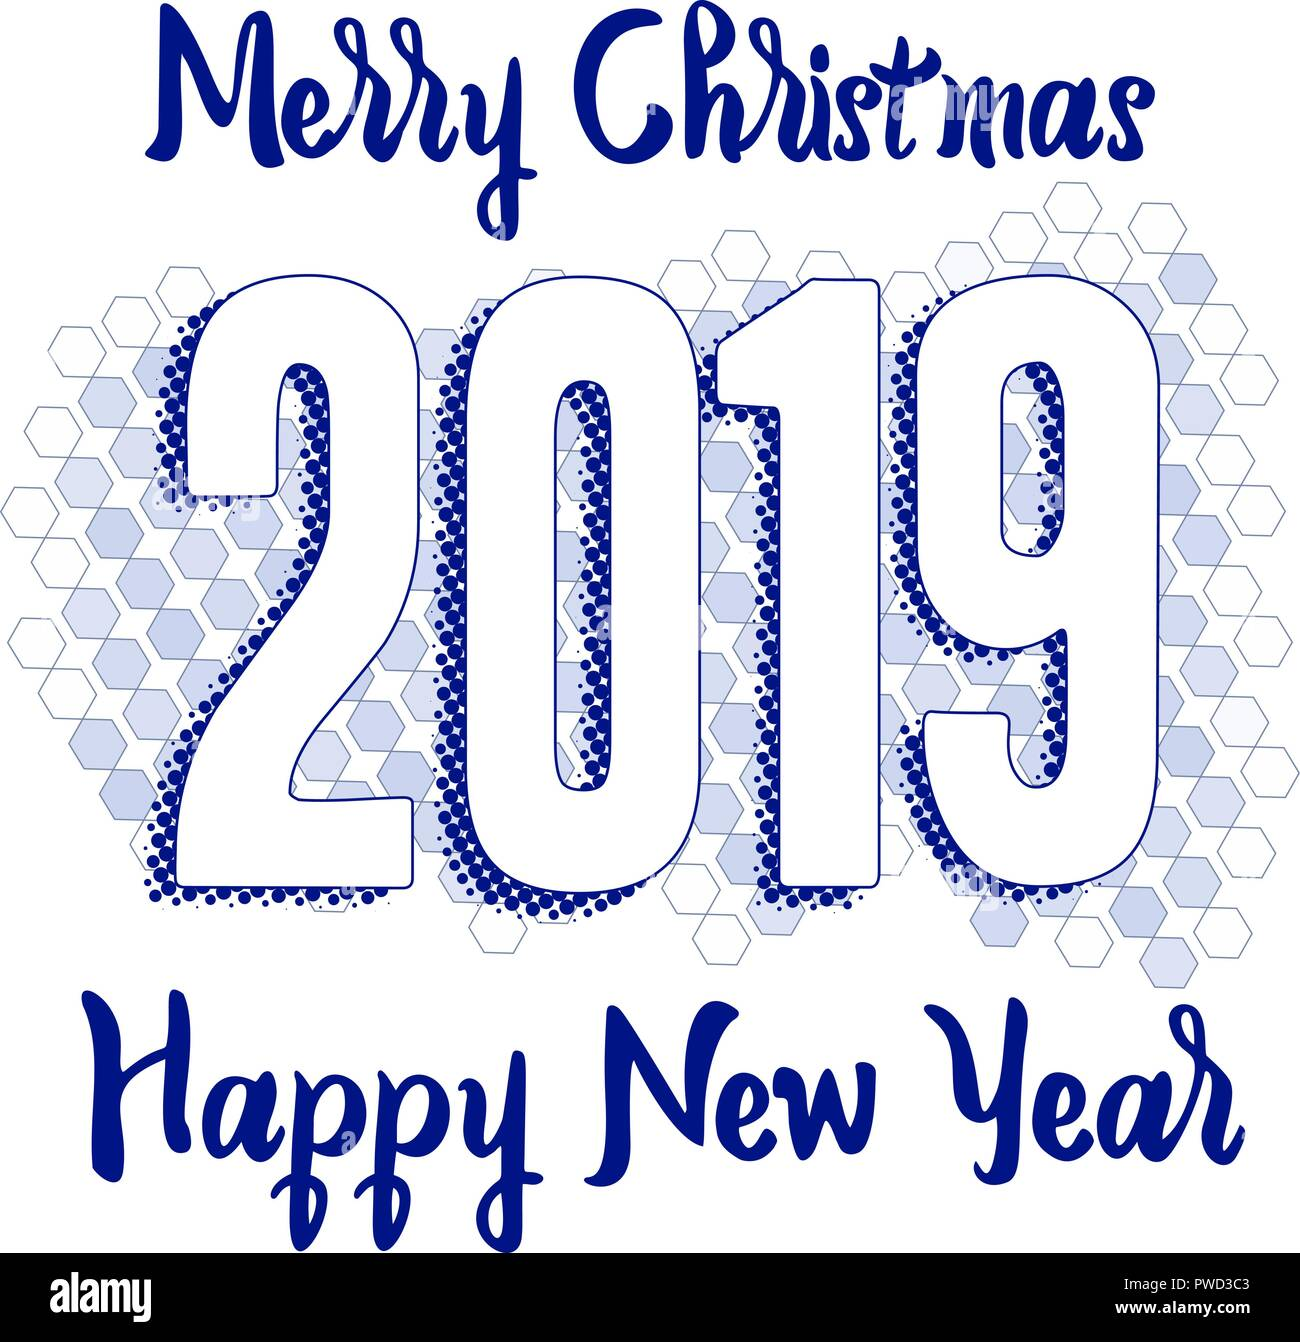 happy new year 2019 greeting card with numbers on hex background merry christmas text flyer or poster design